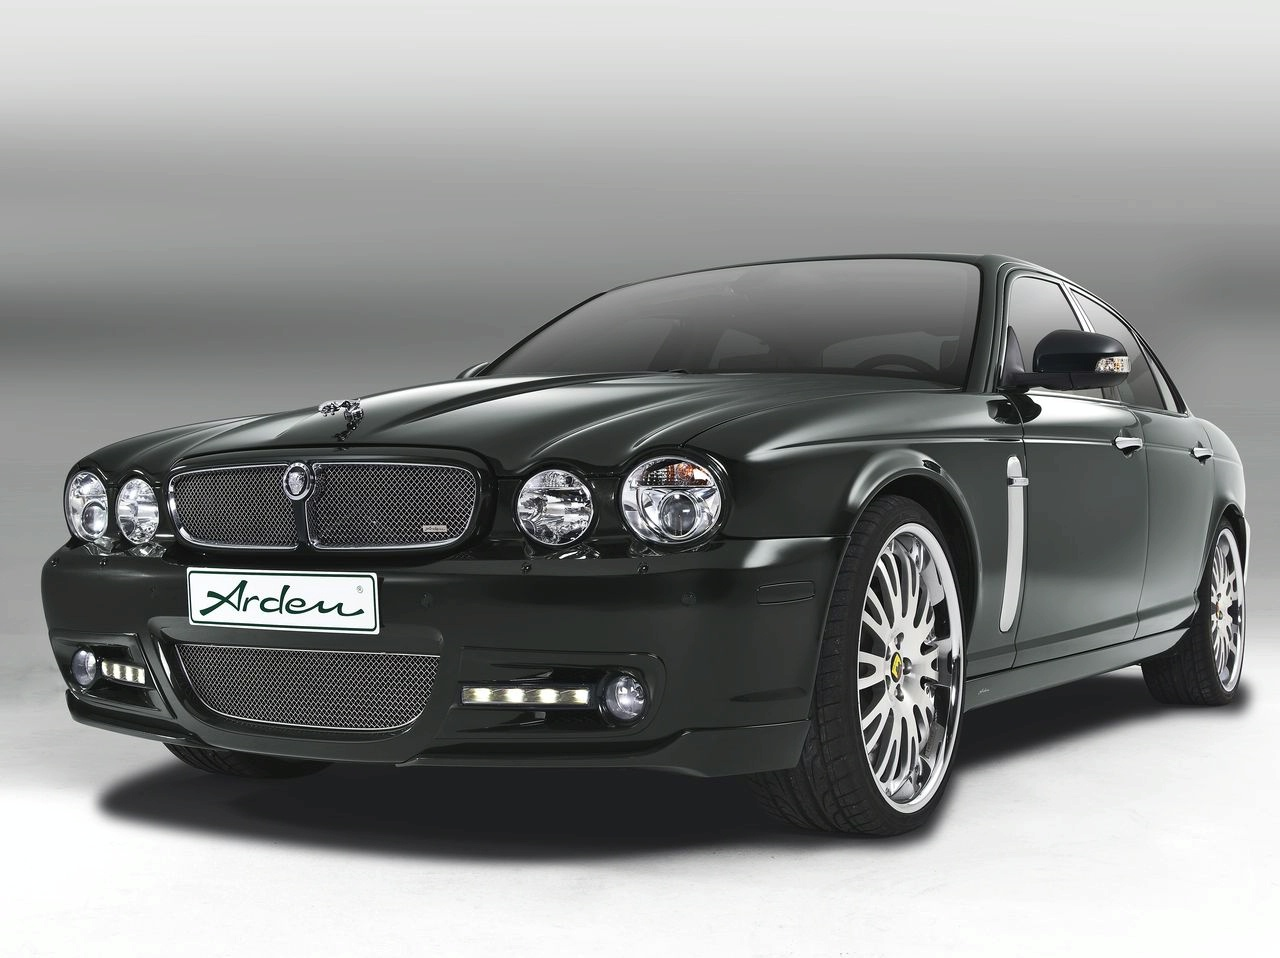 car jaguars have a for reputation maintain news everyone who jaguar carsnews to